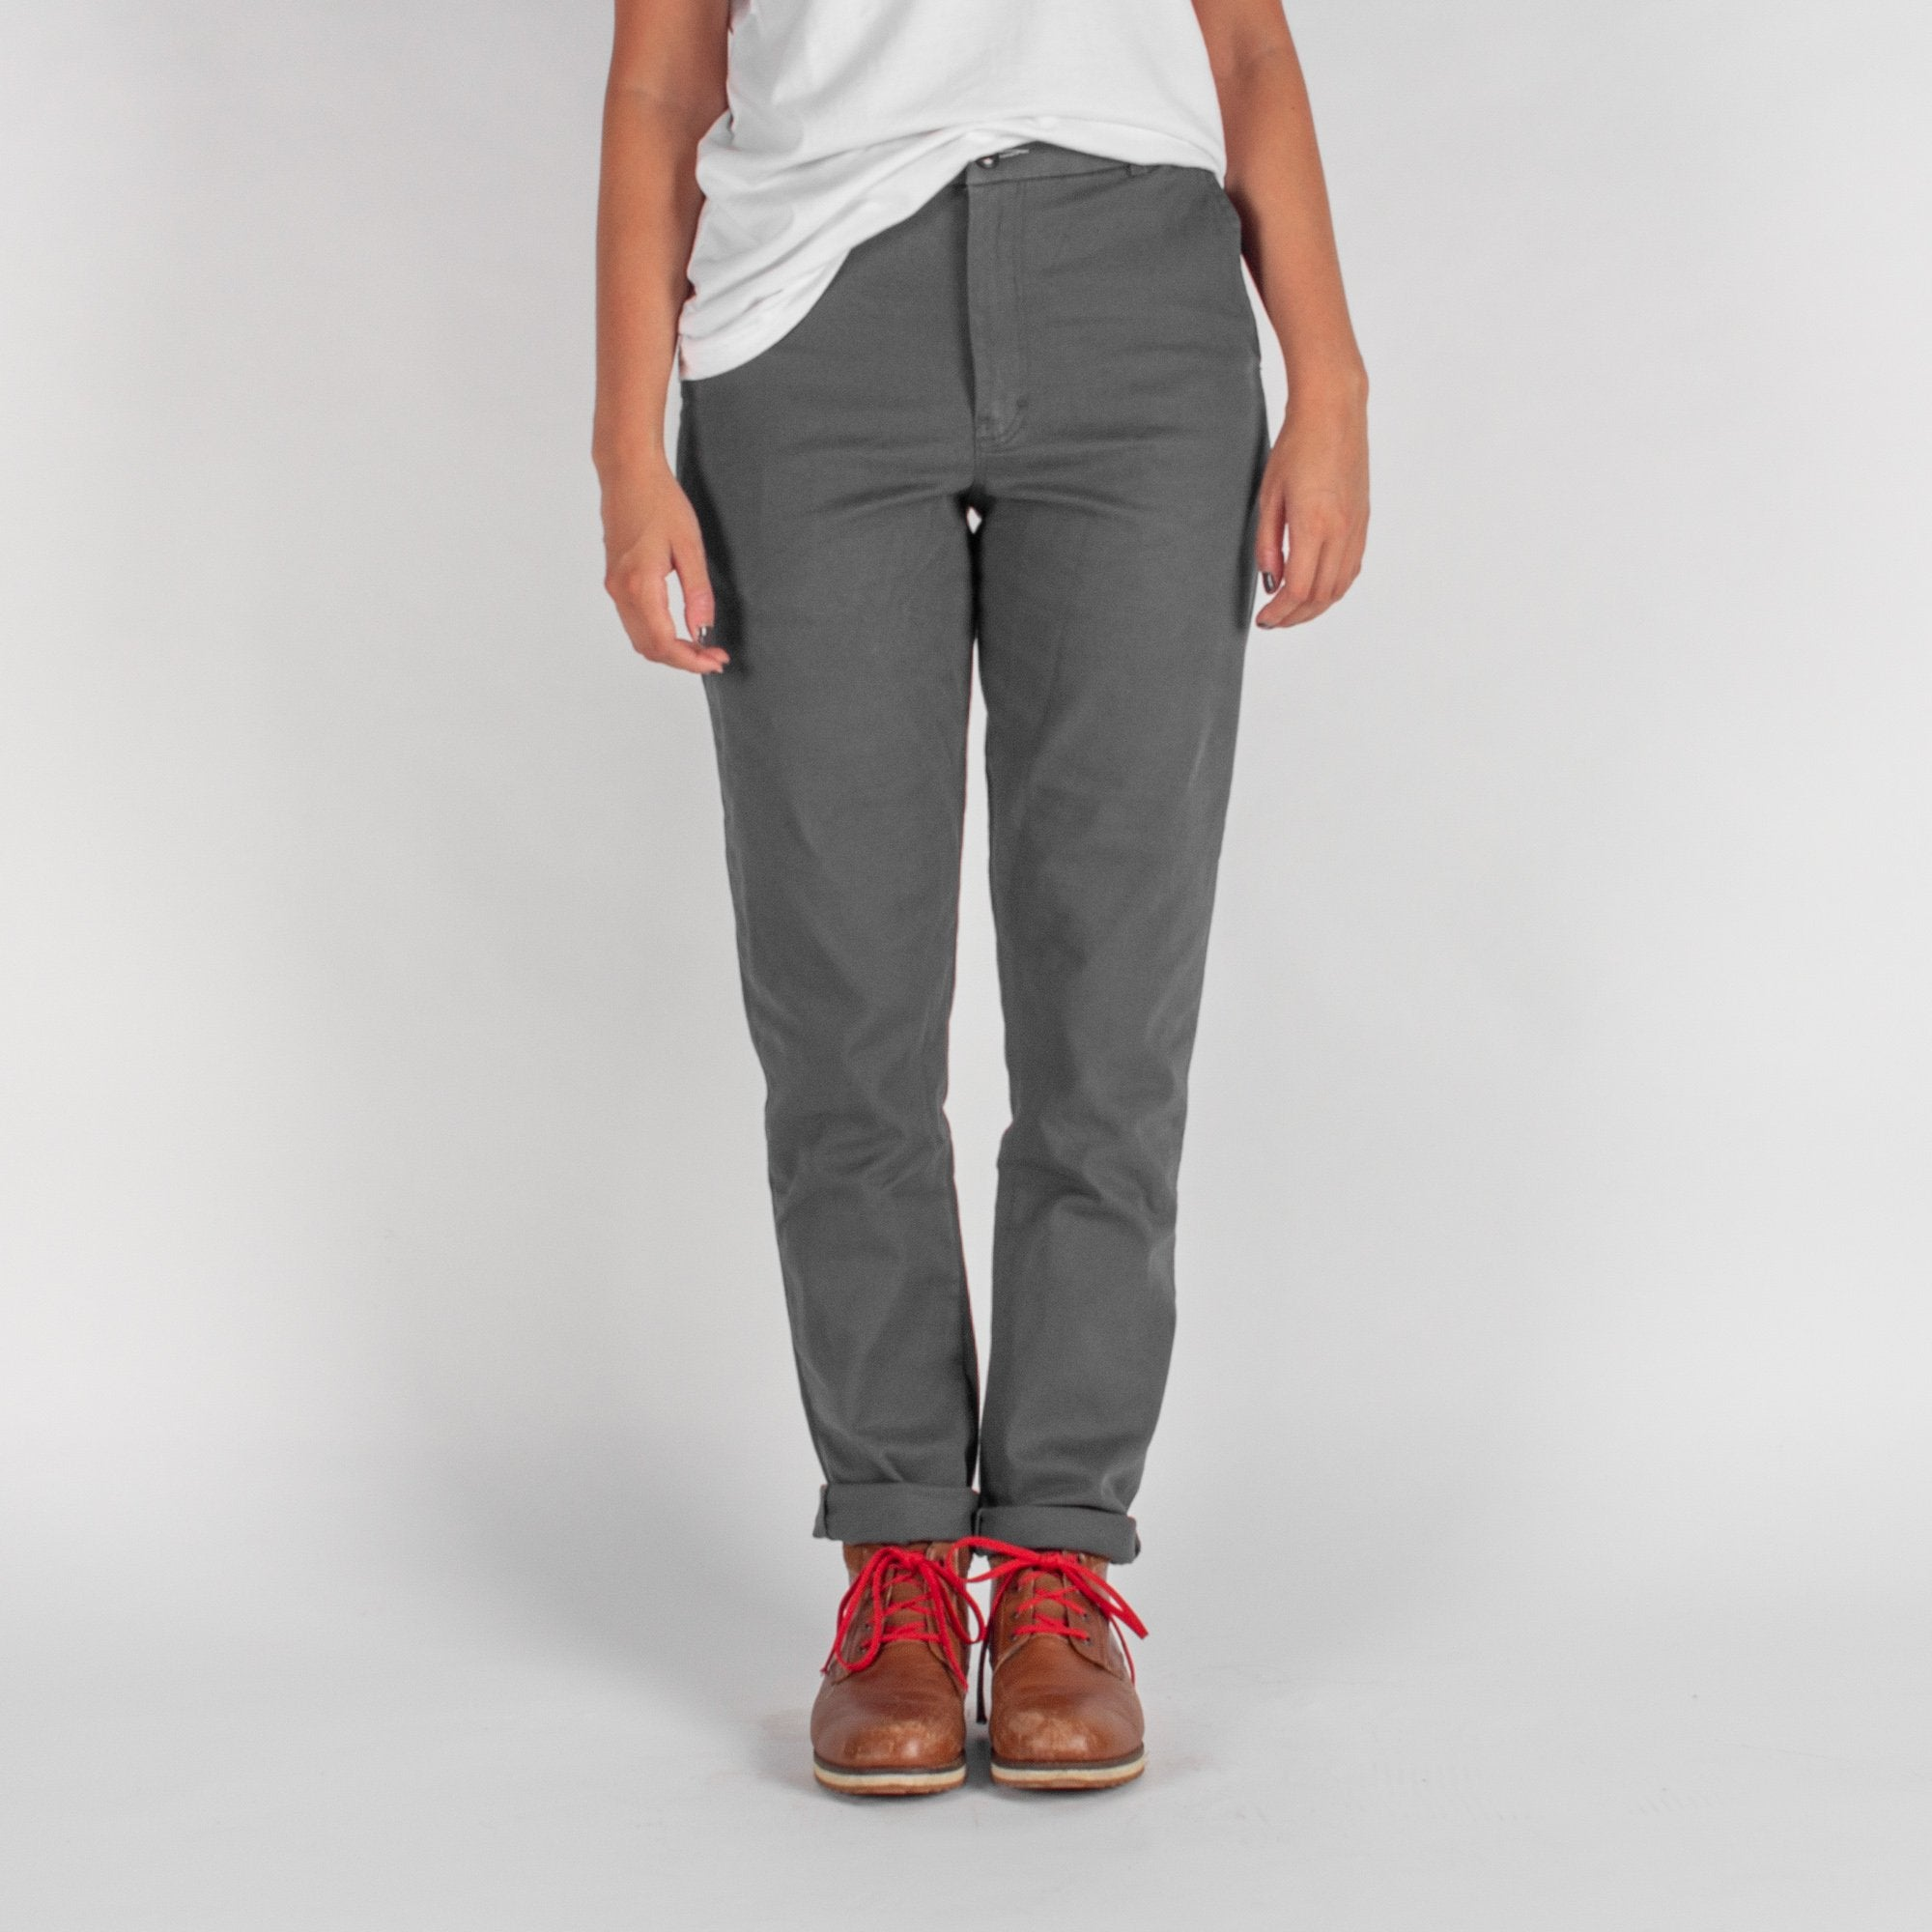 Offtrail Trousers - Grey image 1